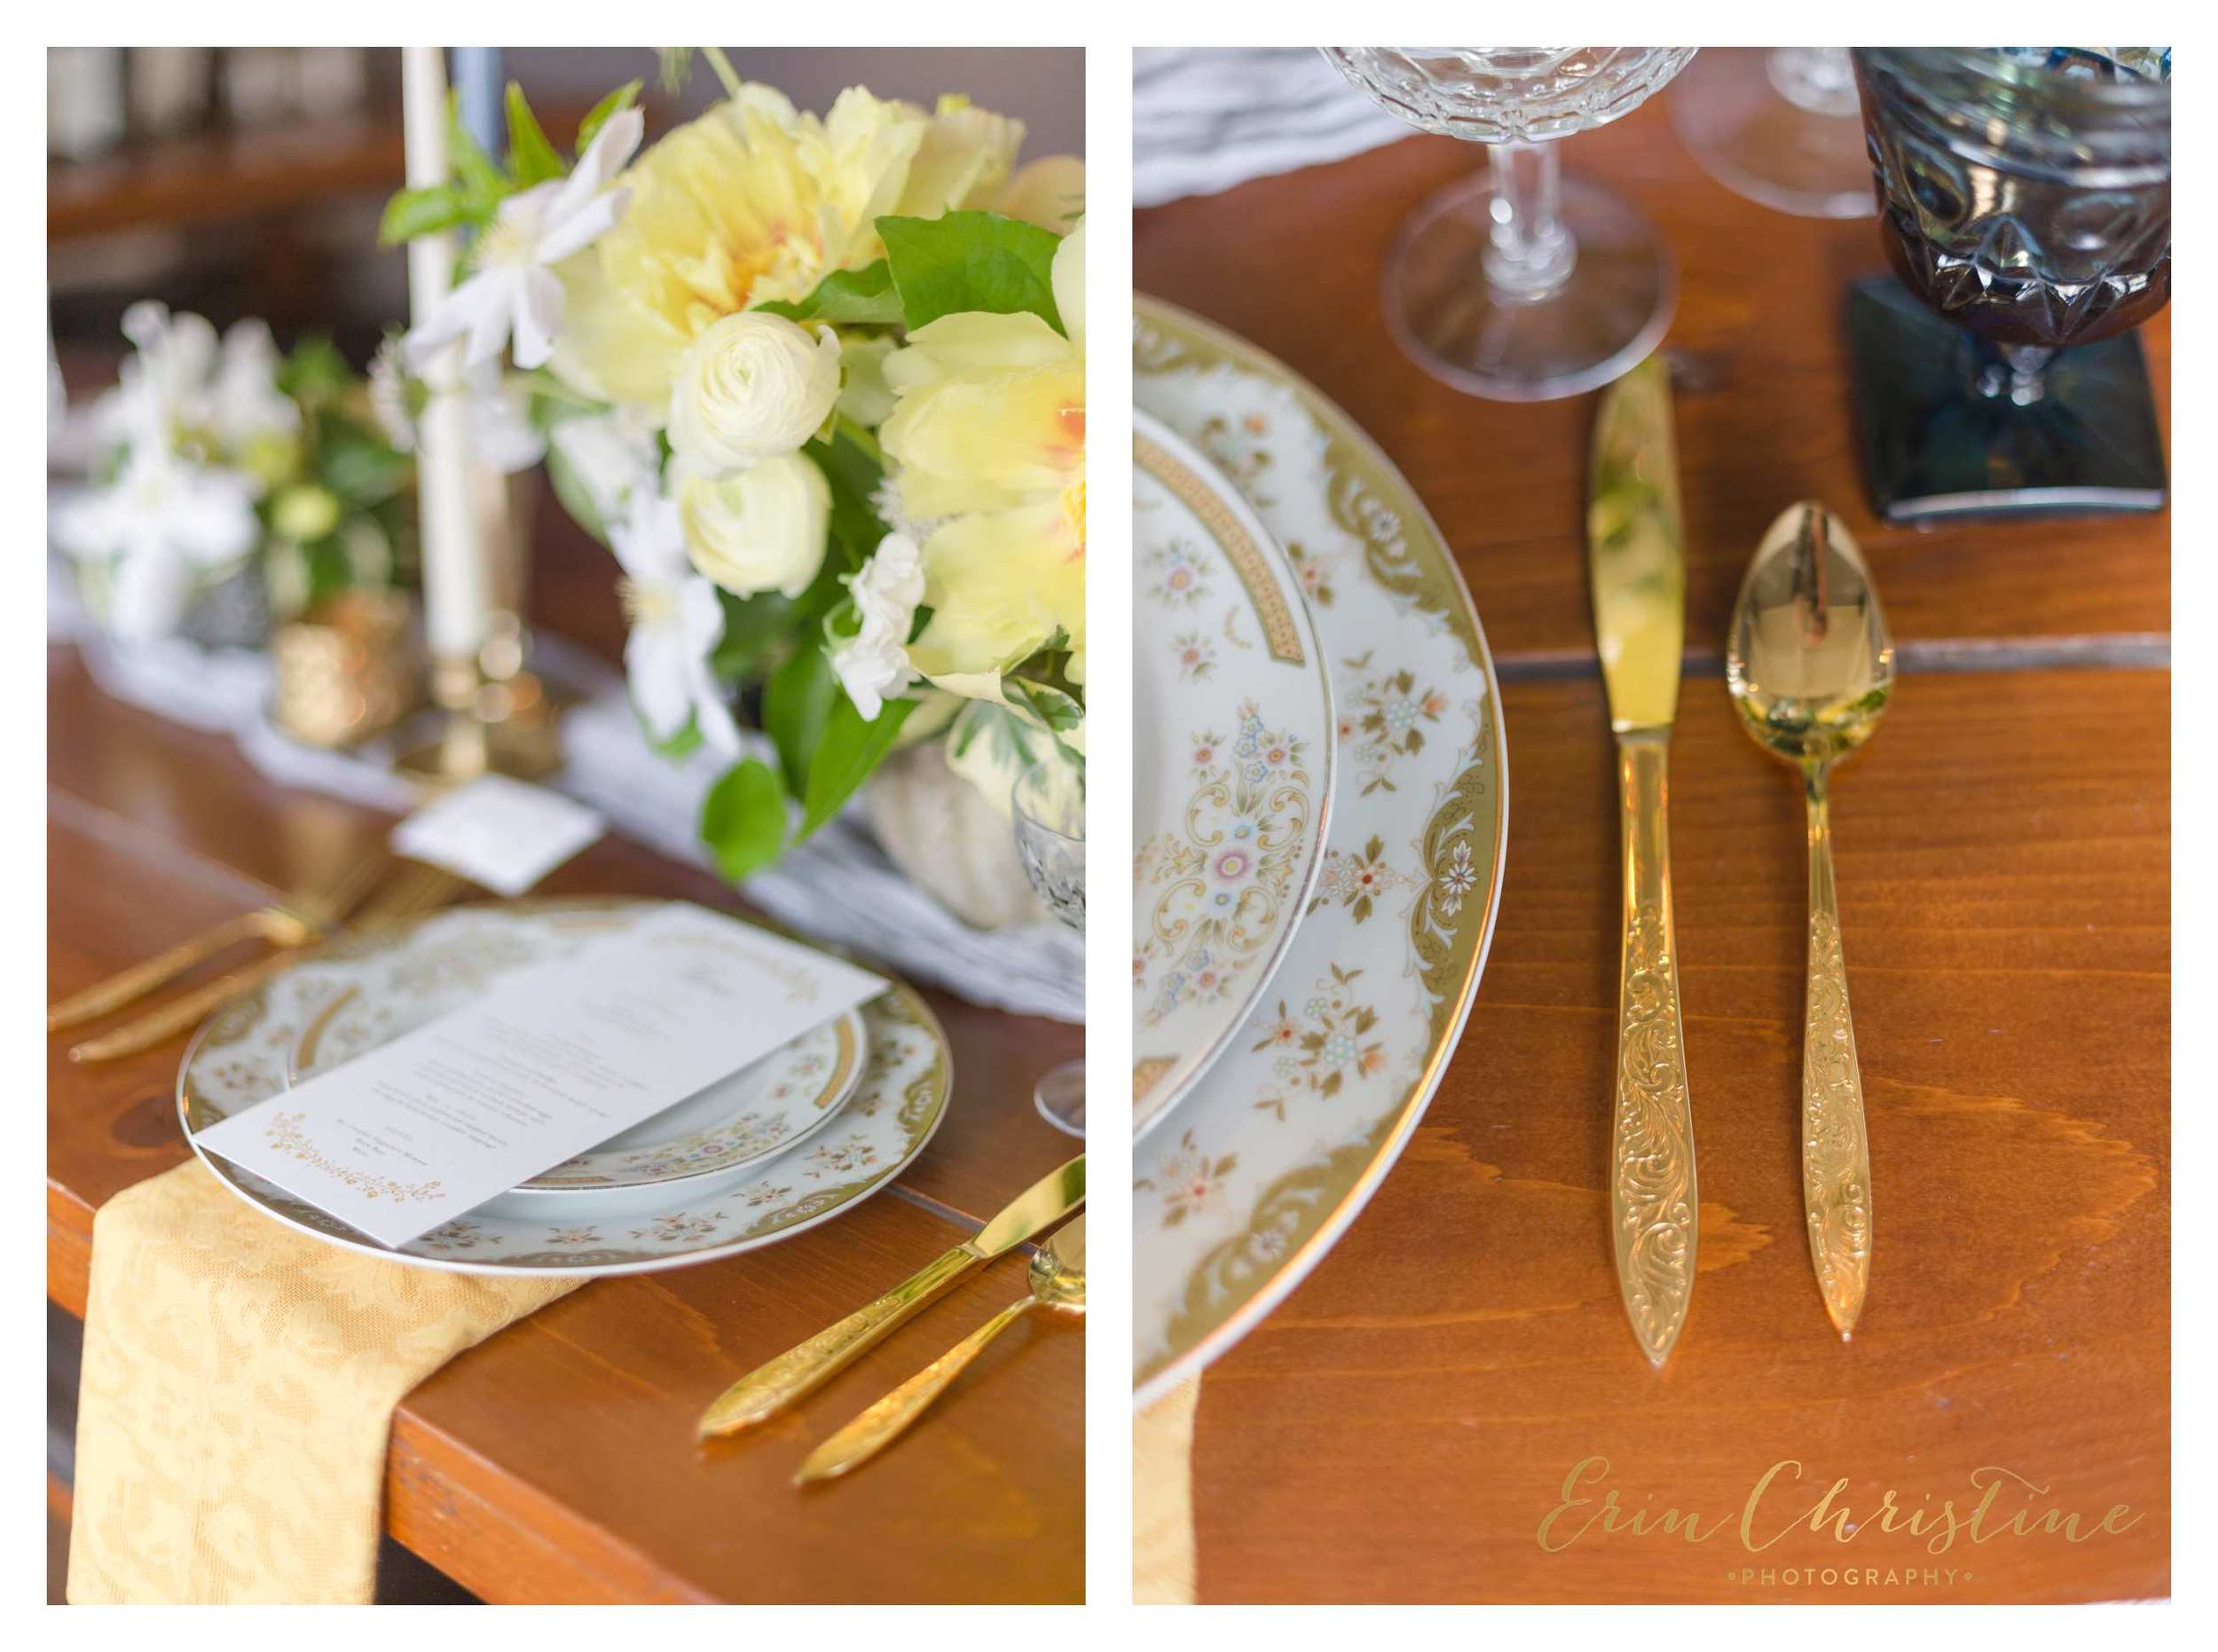 Wedding Anniversary Styled Shoot-2851.jpg